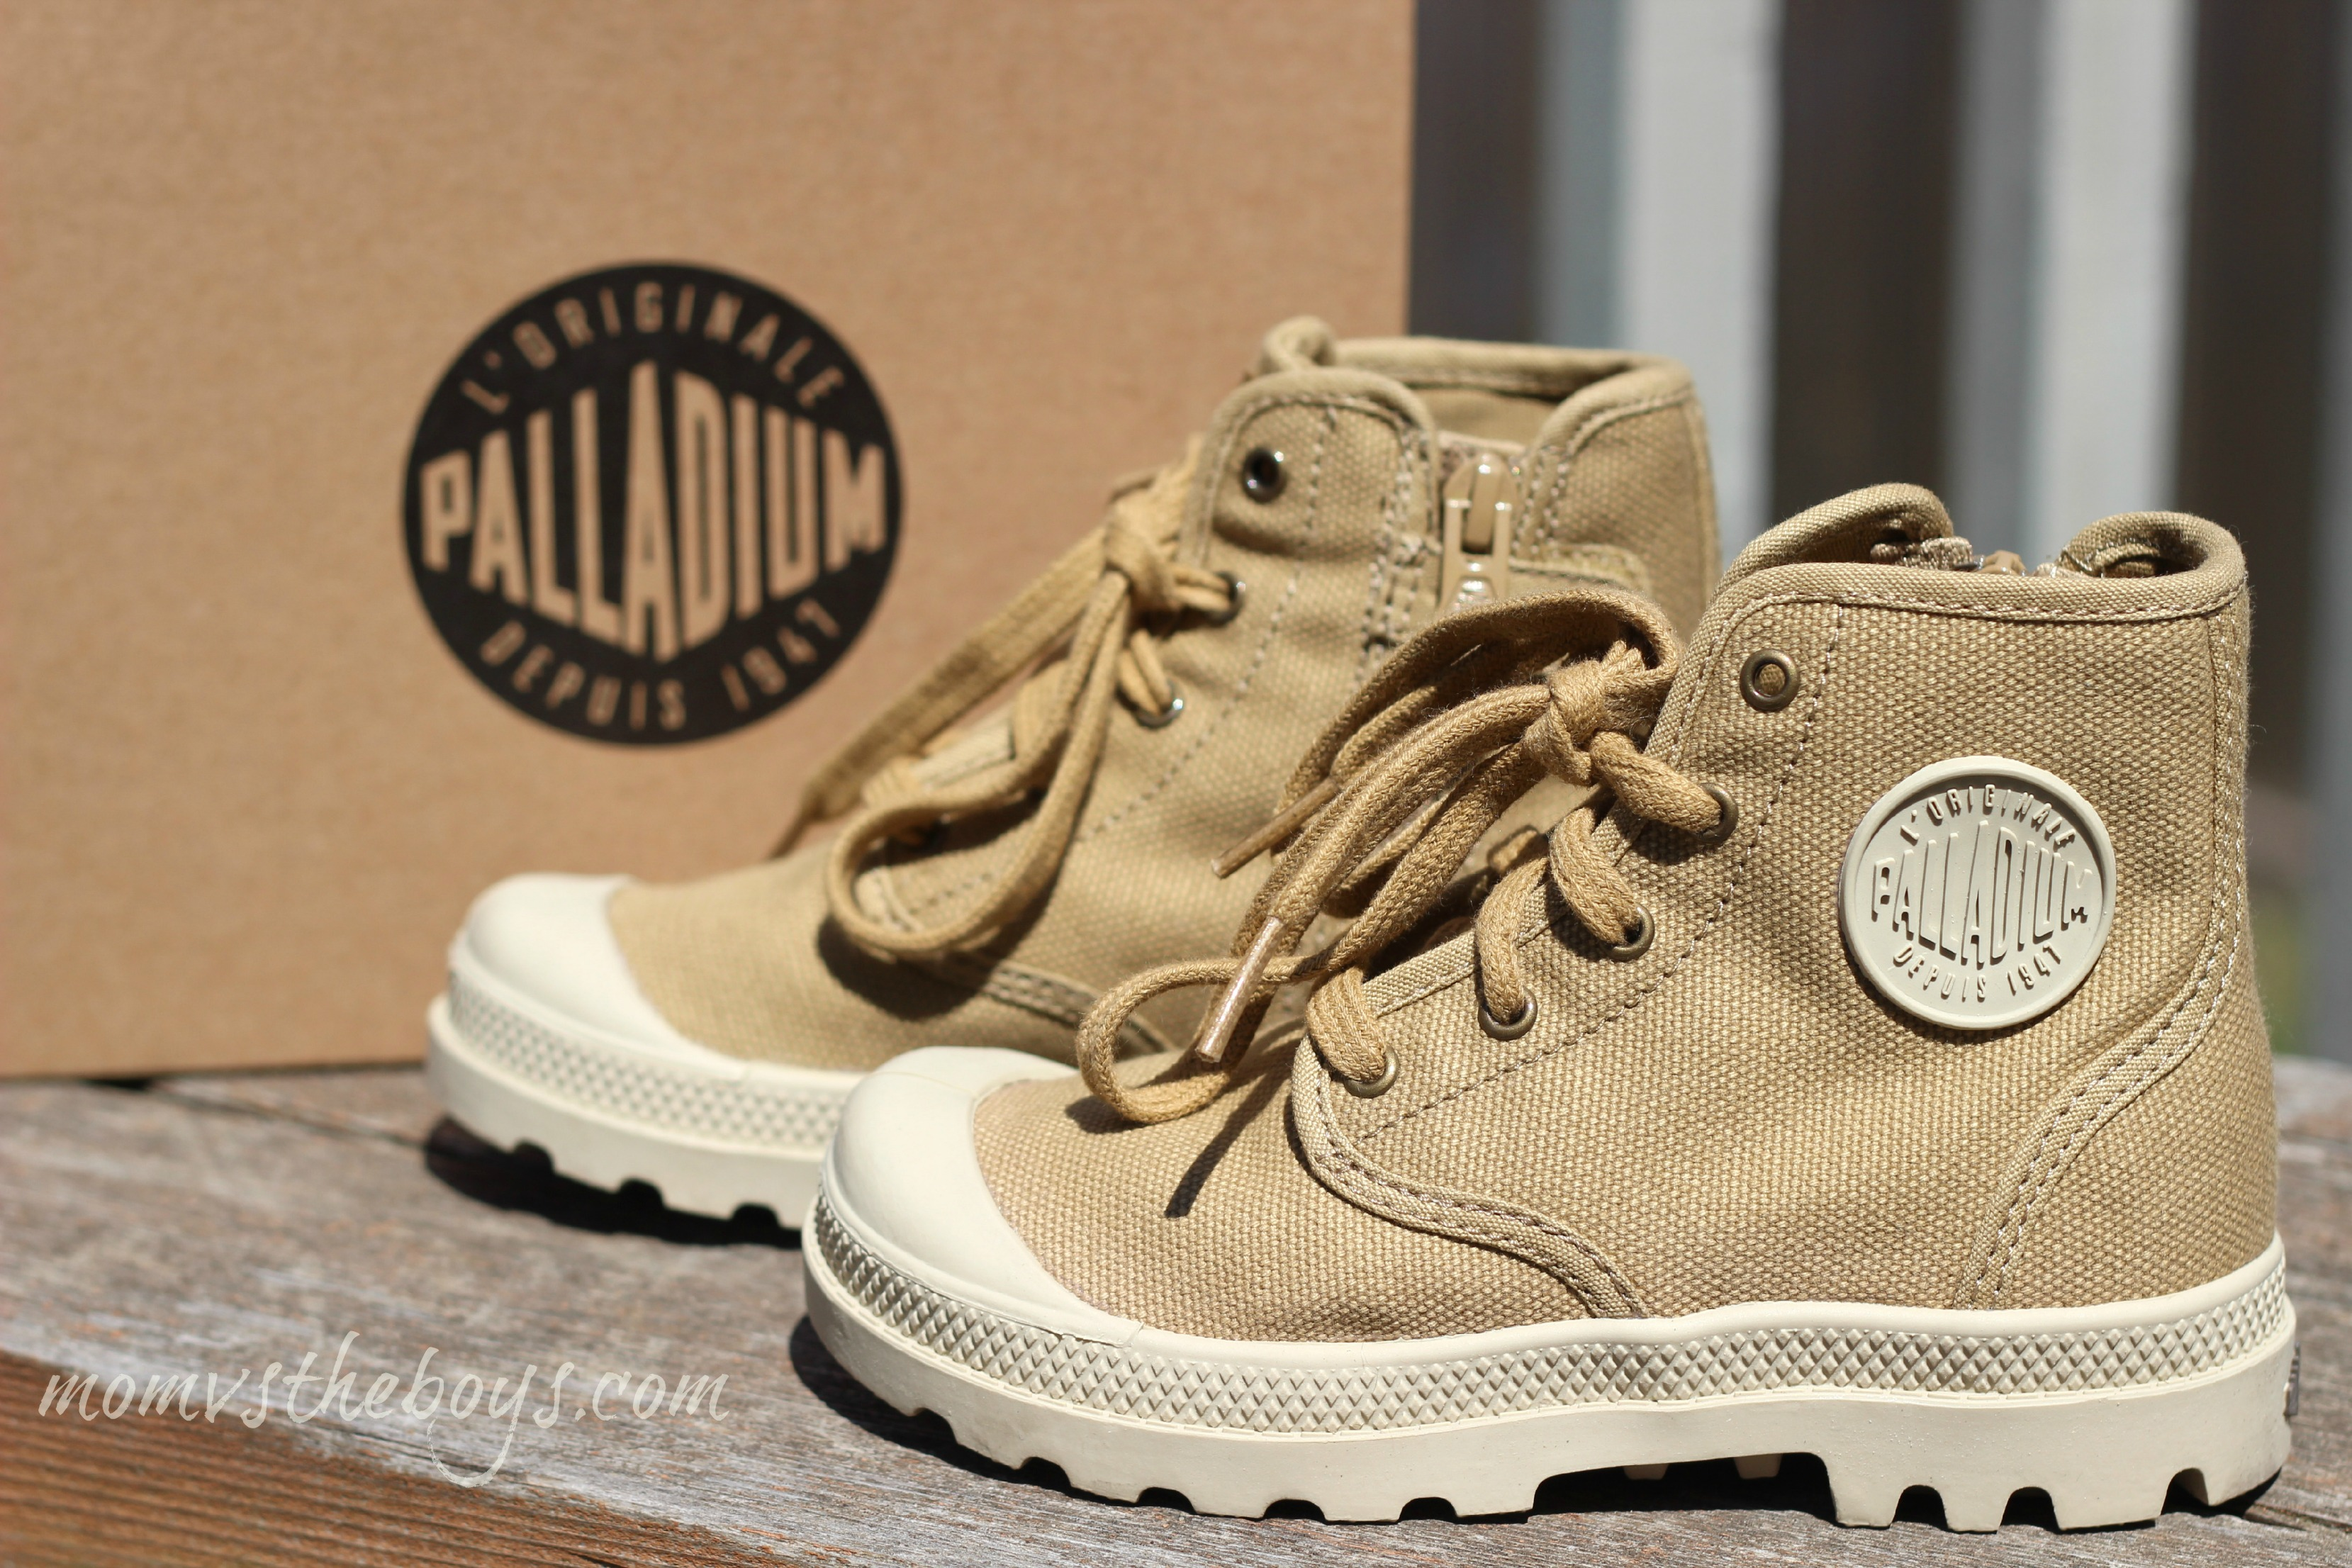 Palladium Boots for Kids {Giveaway}